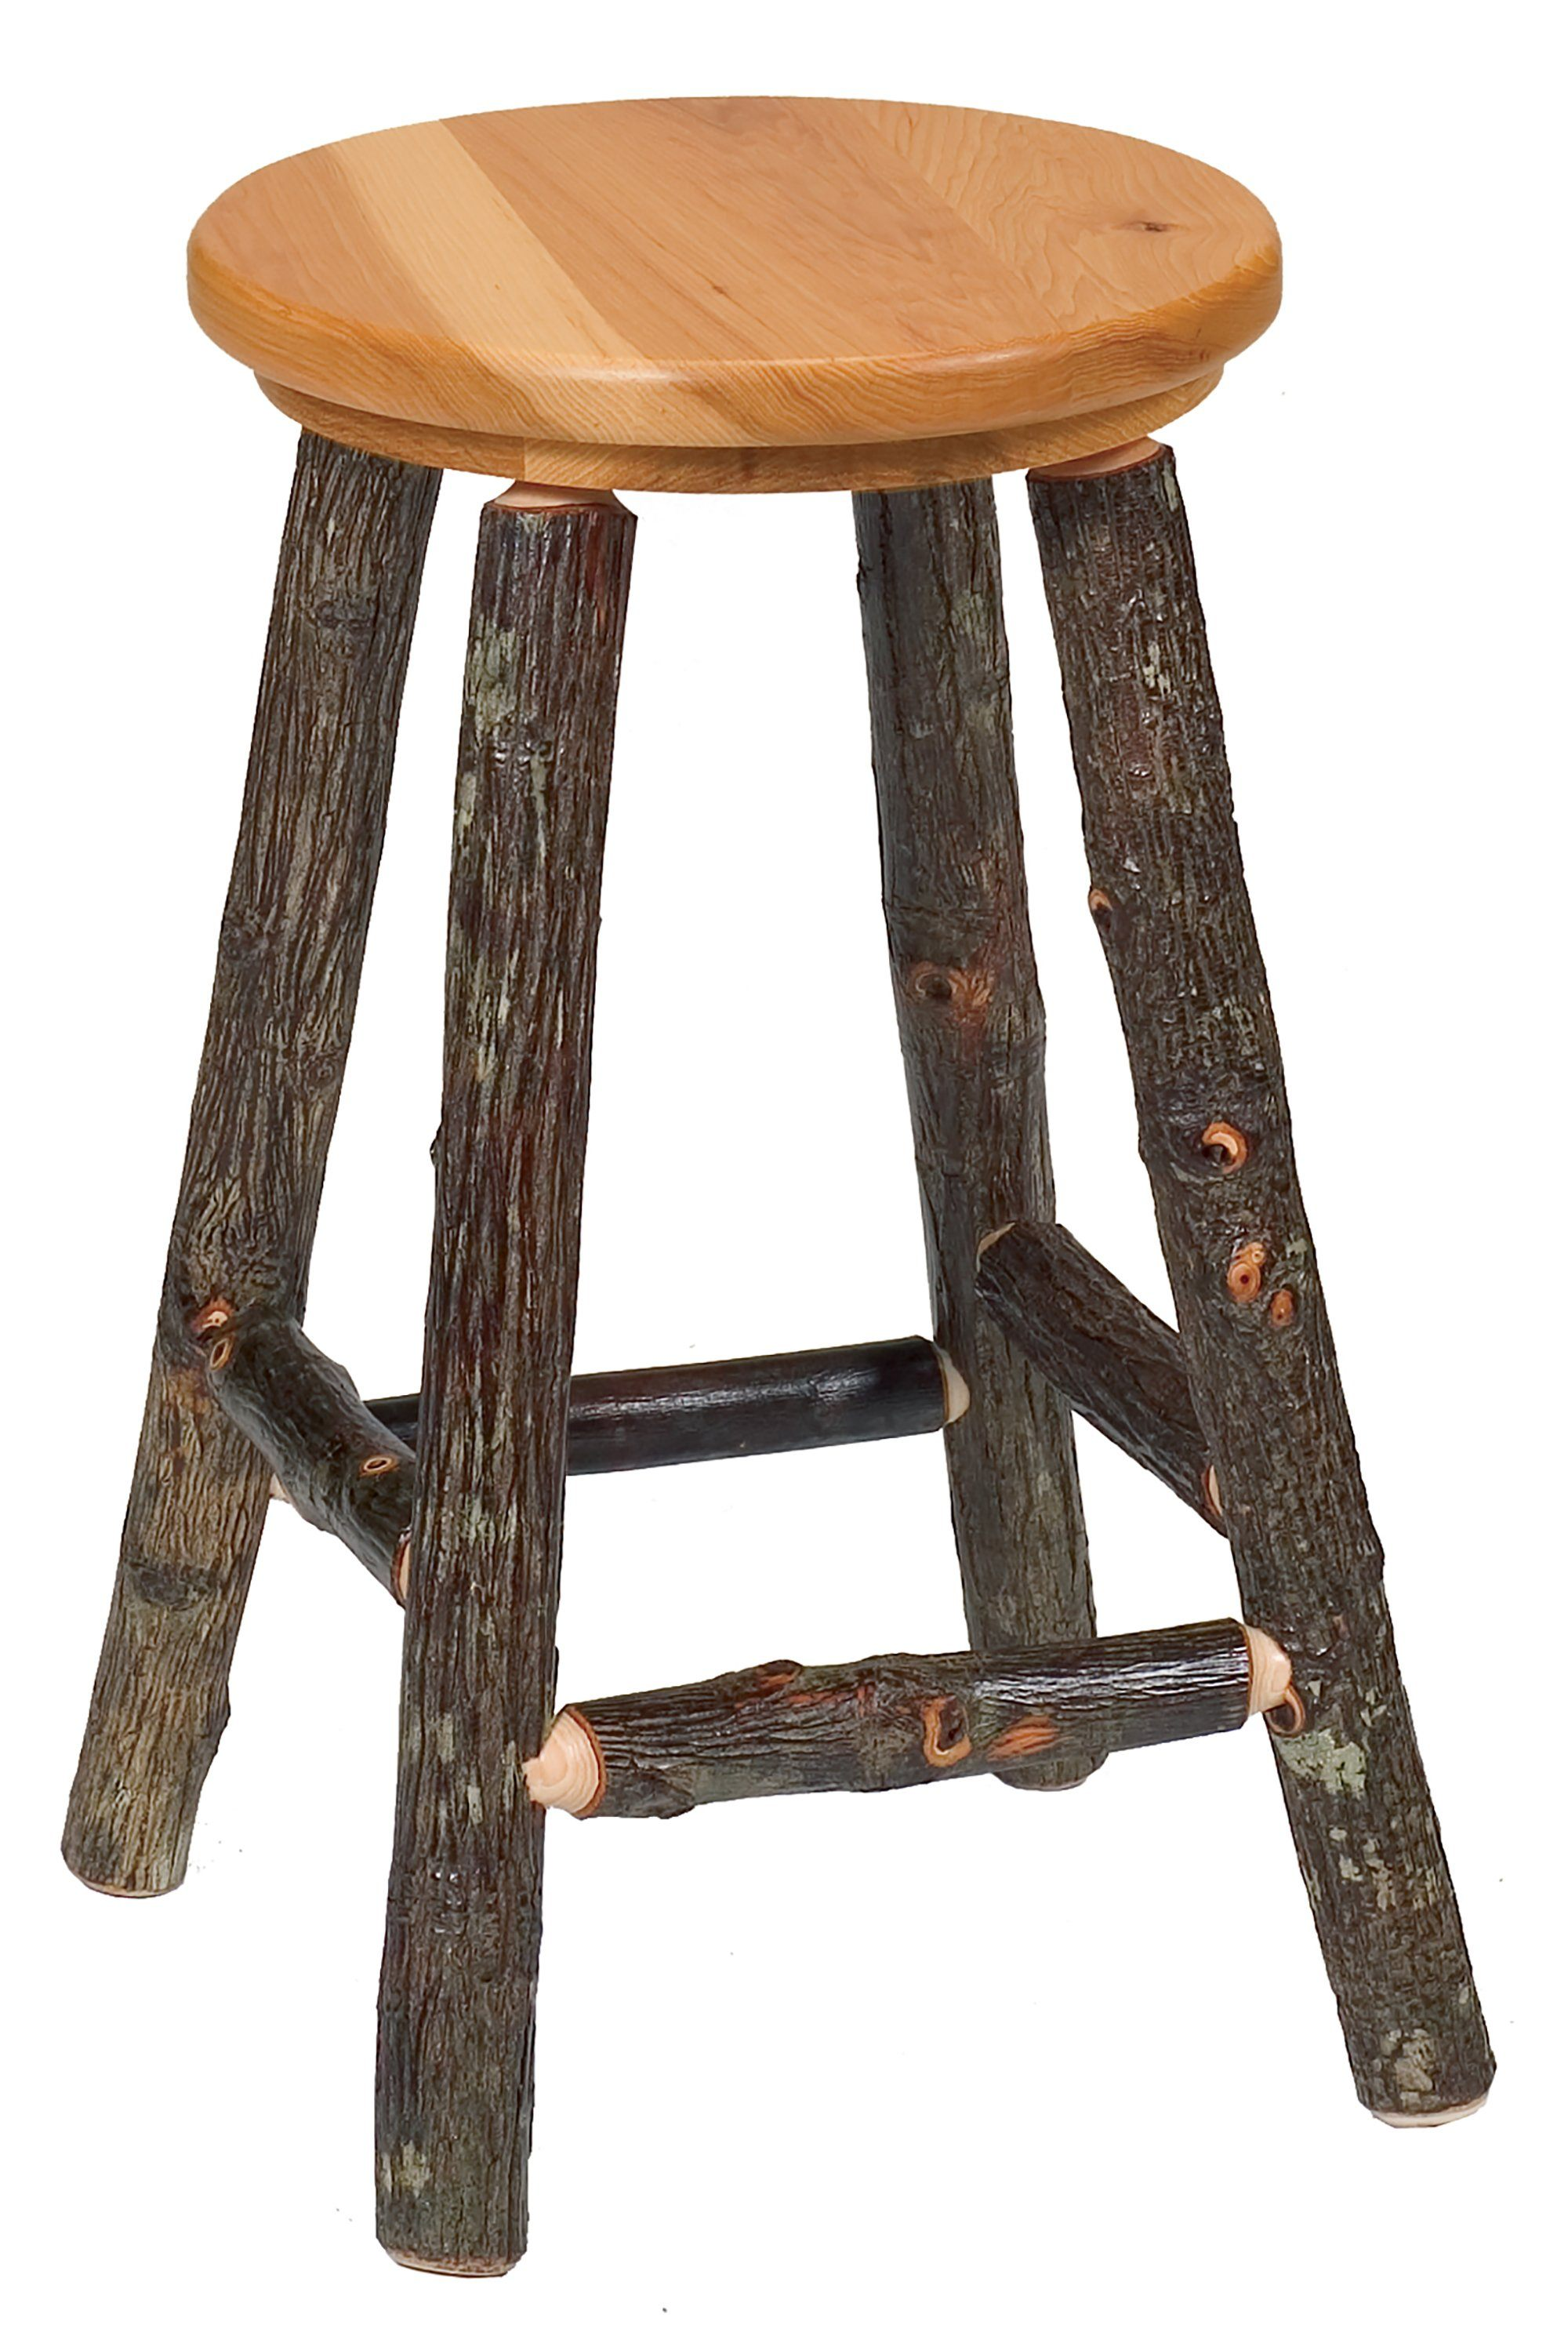 Magnificent Natural Hickory Log Round Counter Stool 24 High Wood Seat Non Swivel Bralicious Painted Fabric Chair Ideas Braliciousco